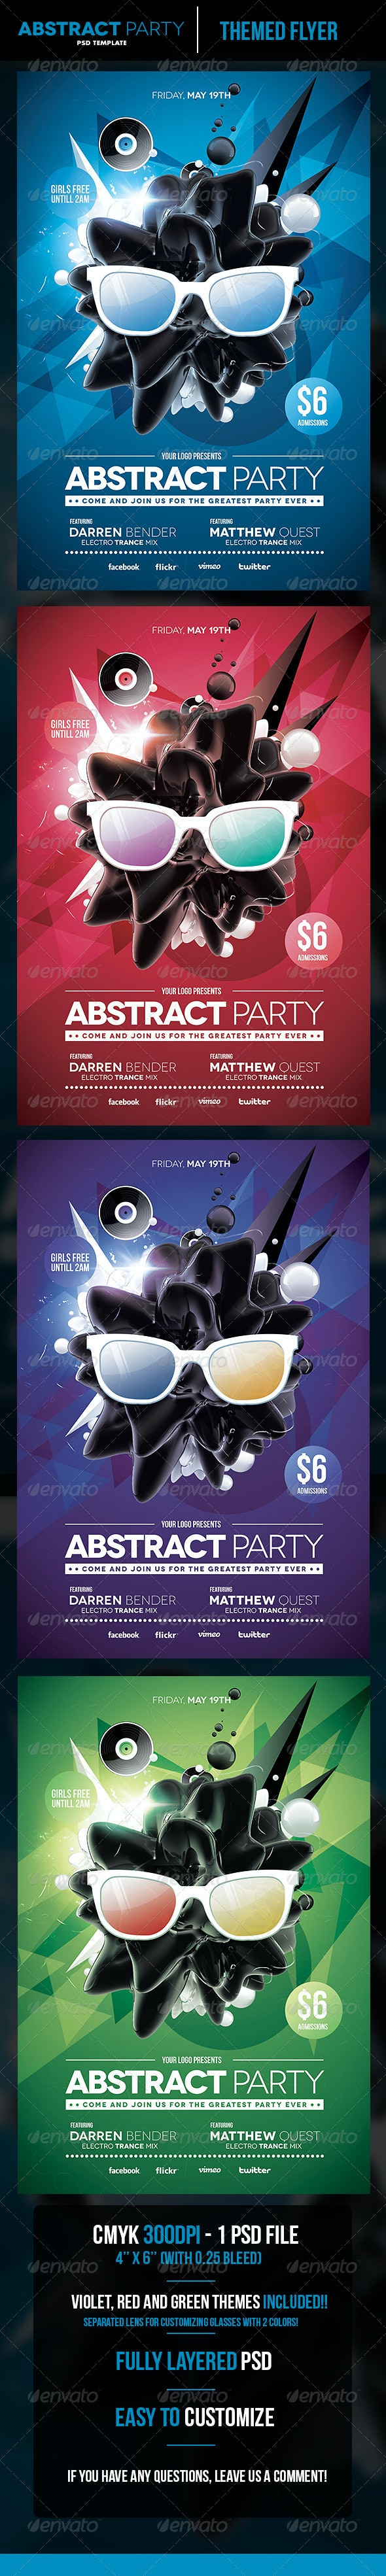 Abstract Party Flyer Template - Flyers Print Templates